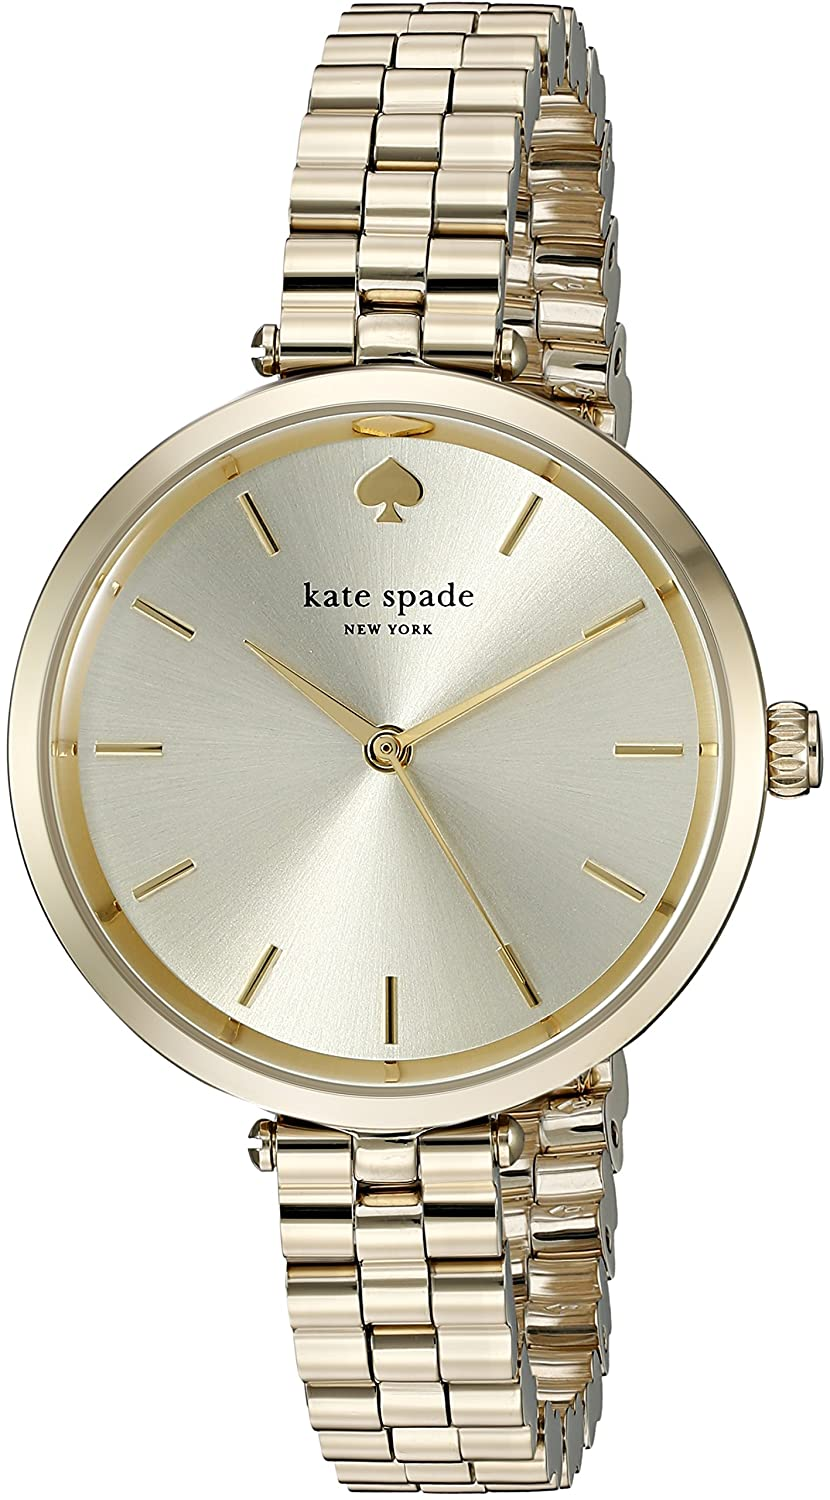 Kate Spade New York Holland Goldtone Stainless Steel Watch by Kate+Spade+New+York